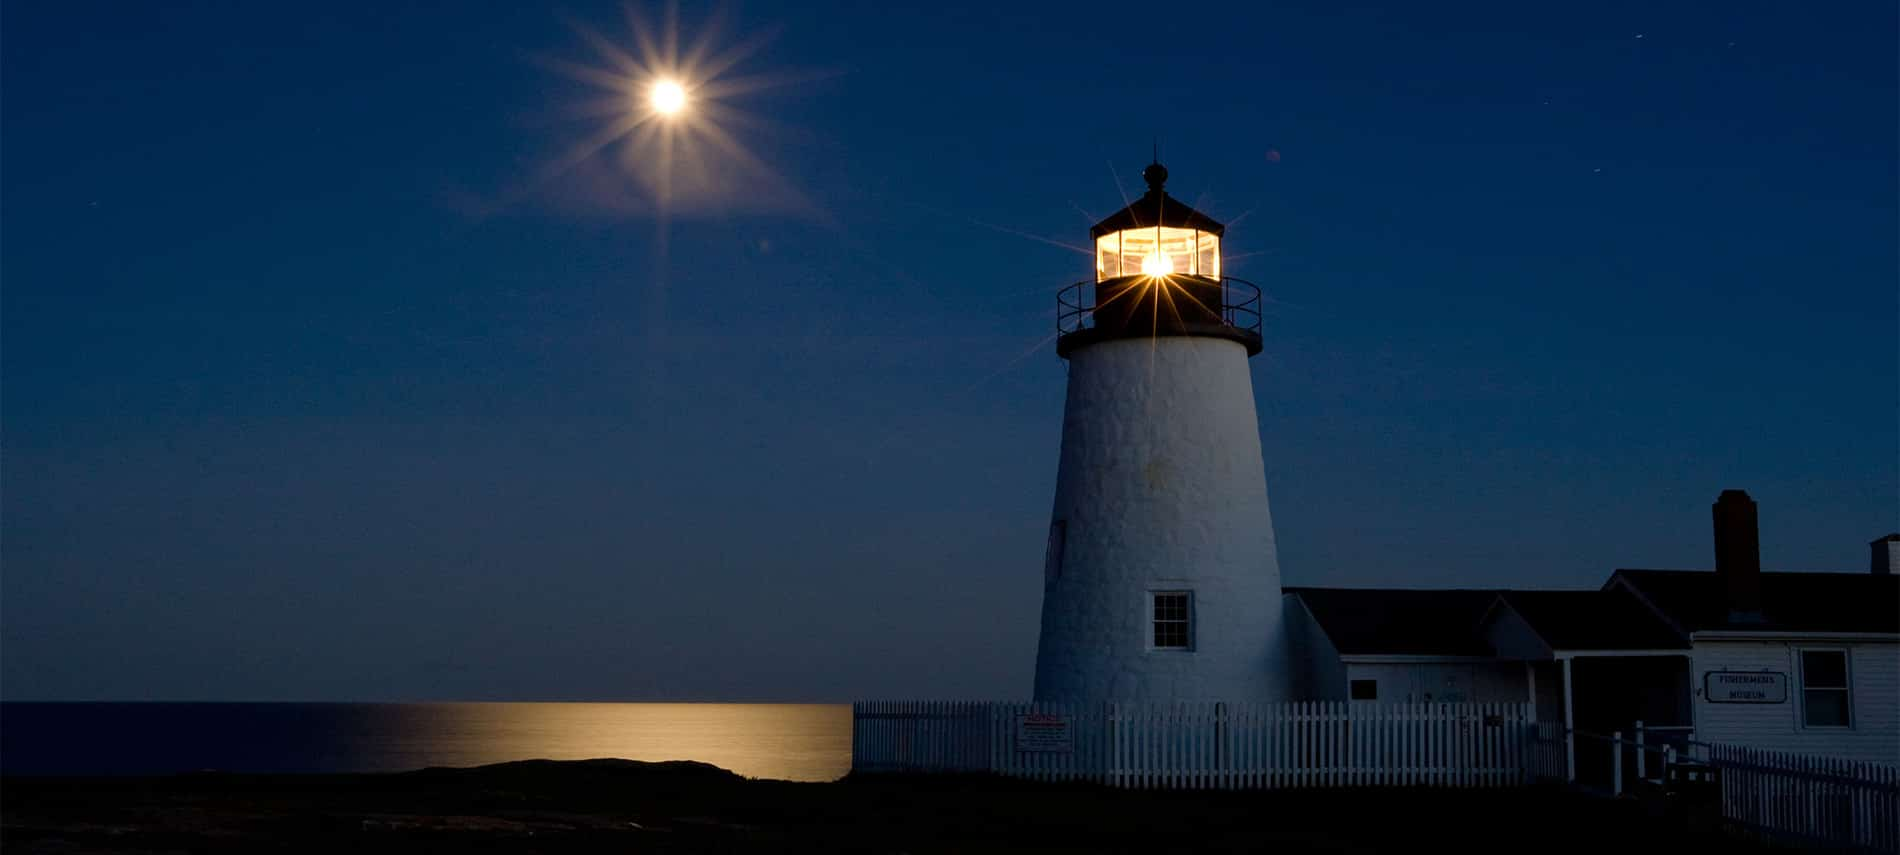 Blue night sky with glowing moon shining on the water and lit up lighthouse .